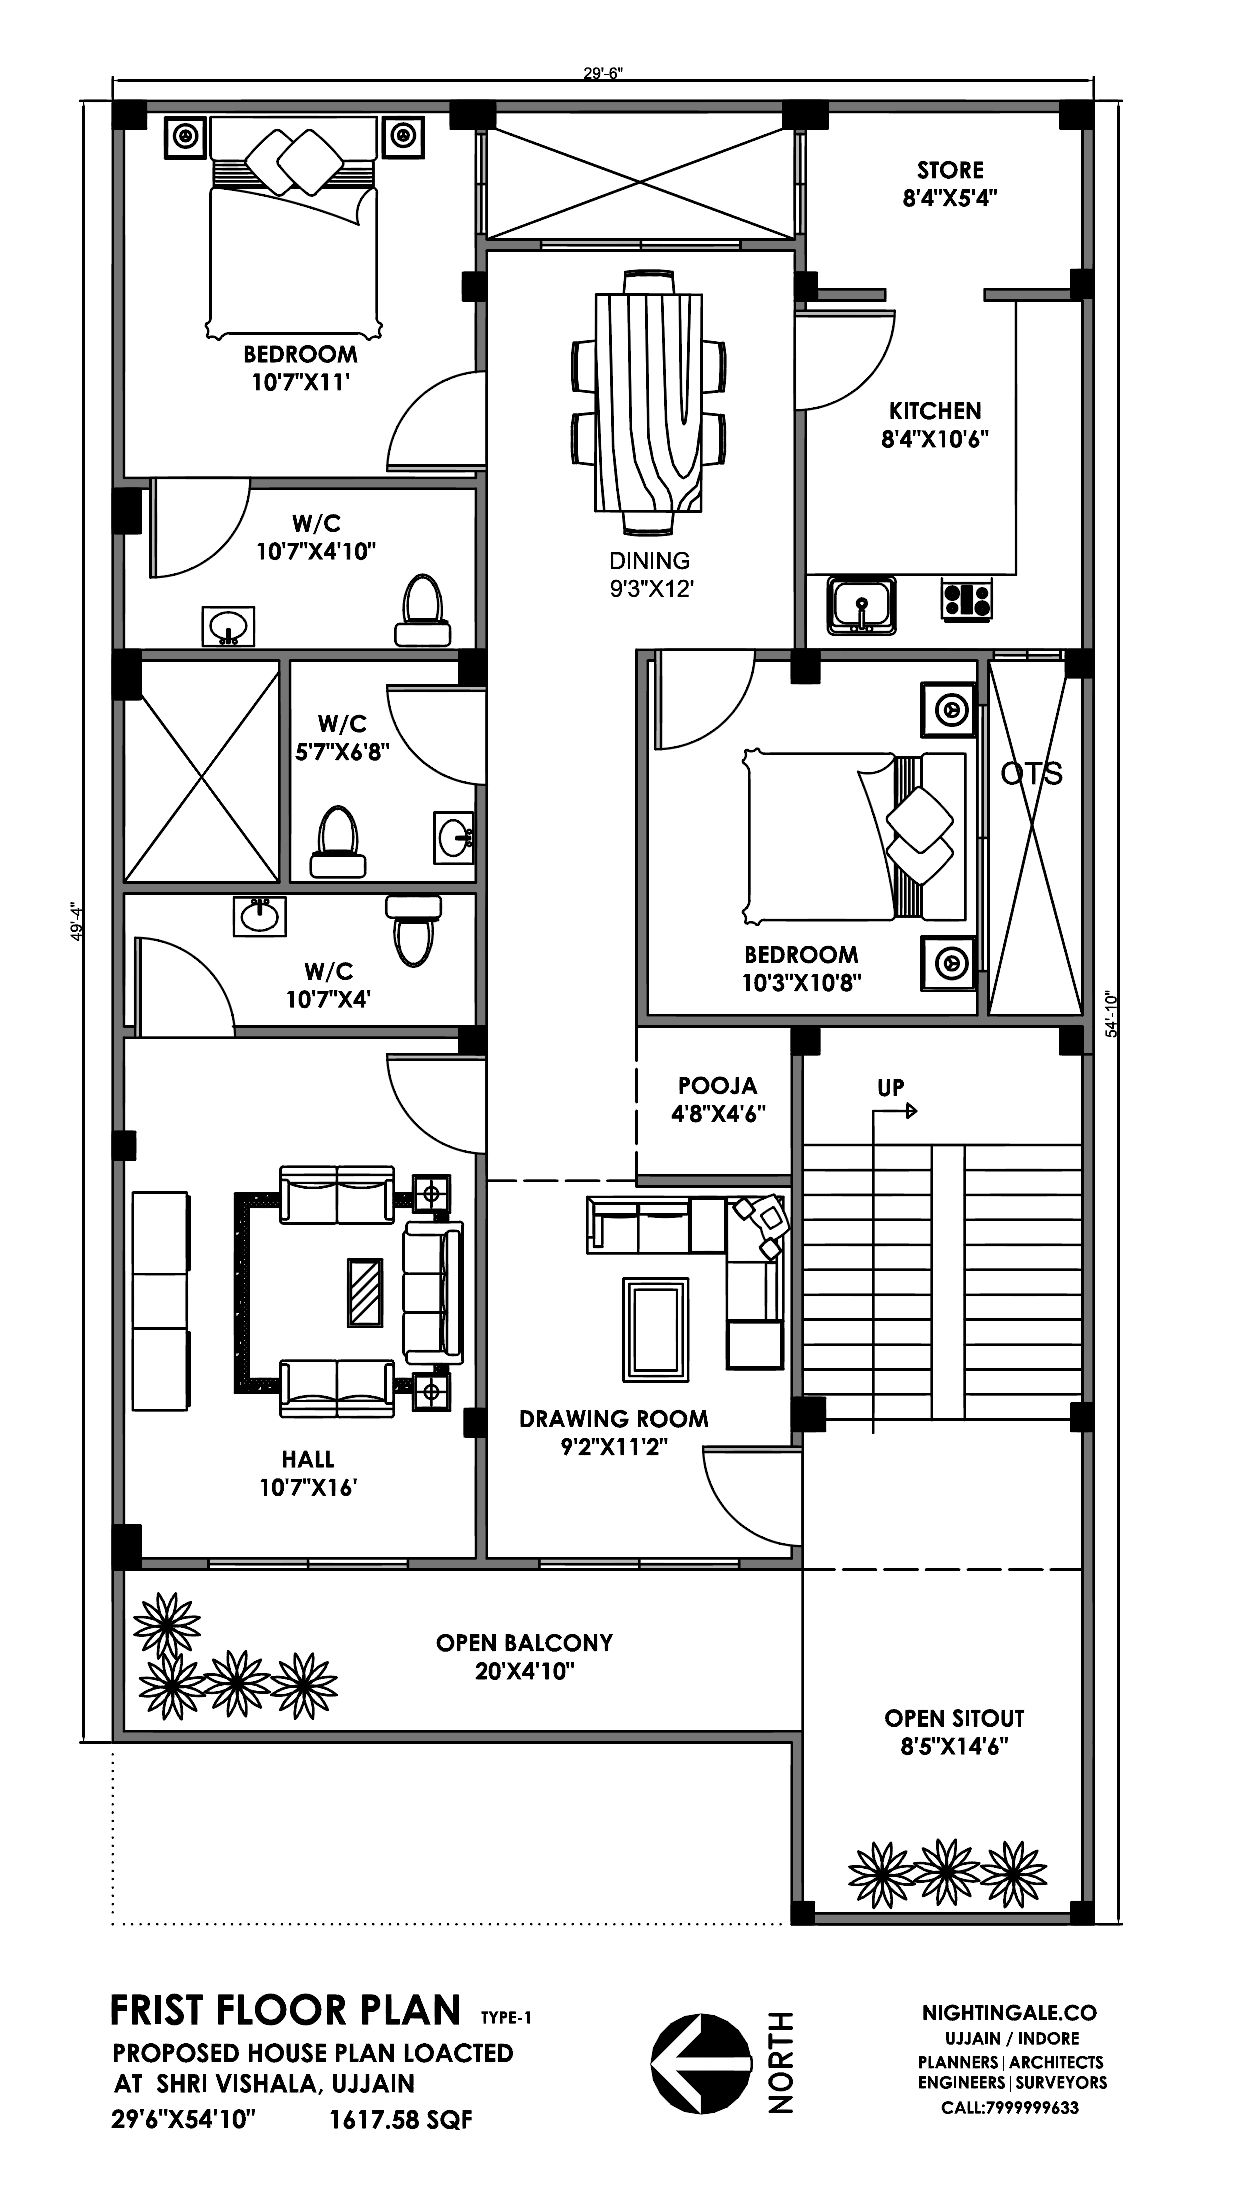 30x40 House Floor Plans In 2020 New House Plans 30x50 House Plans House Layout Plans